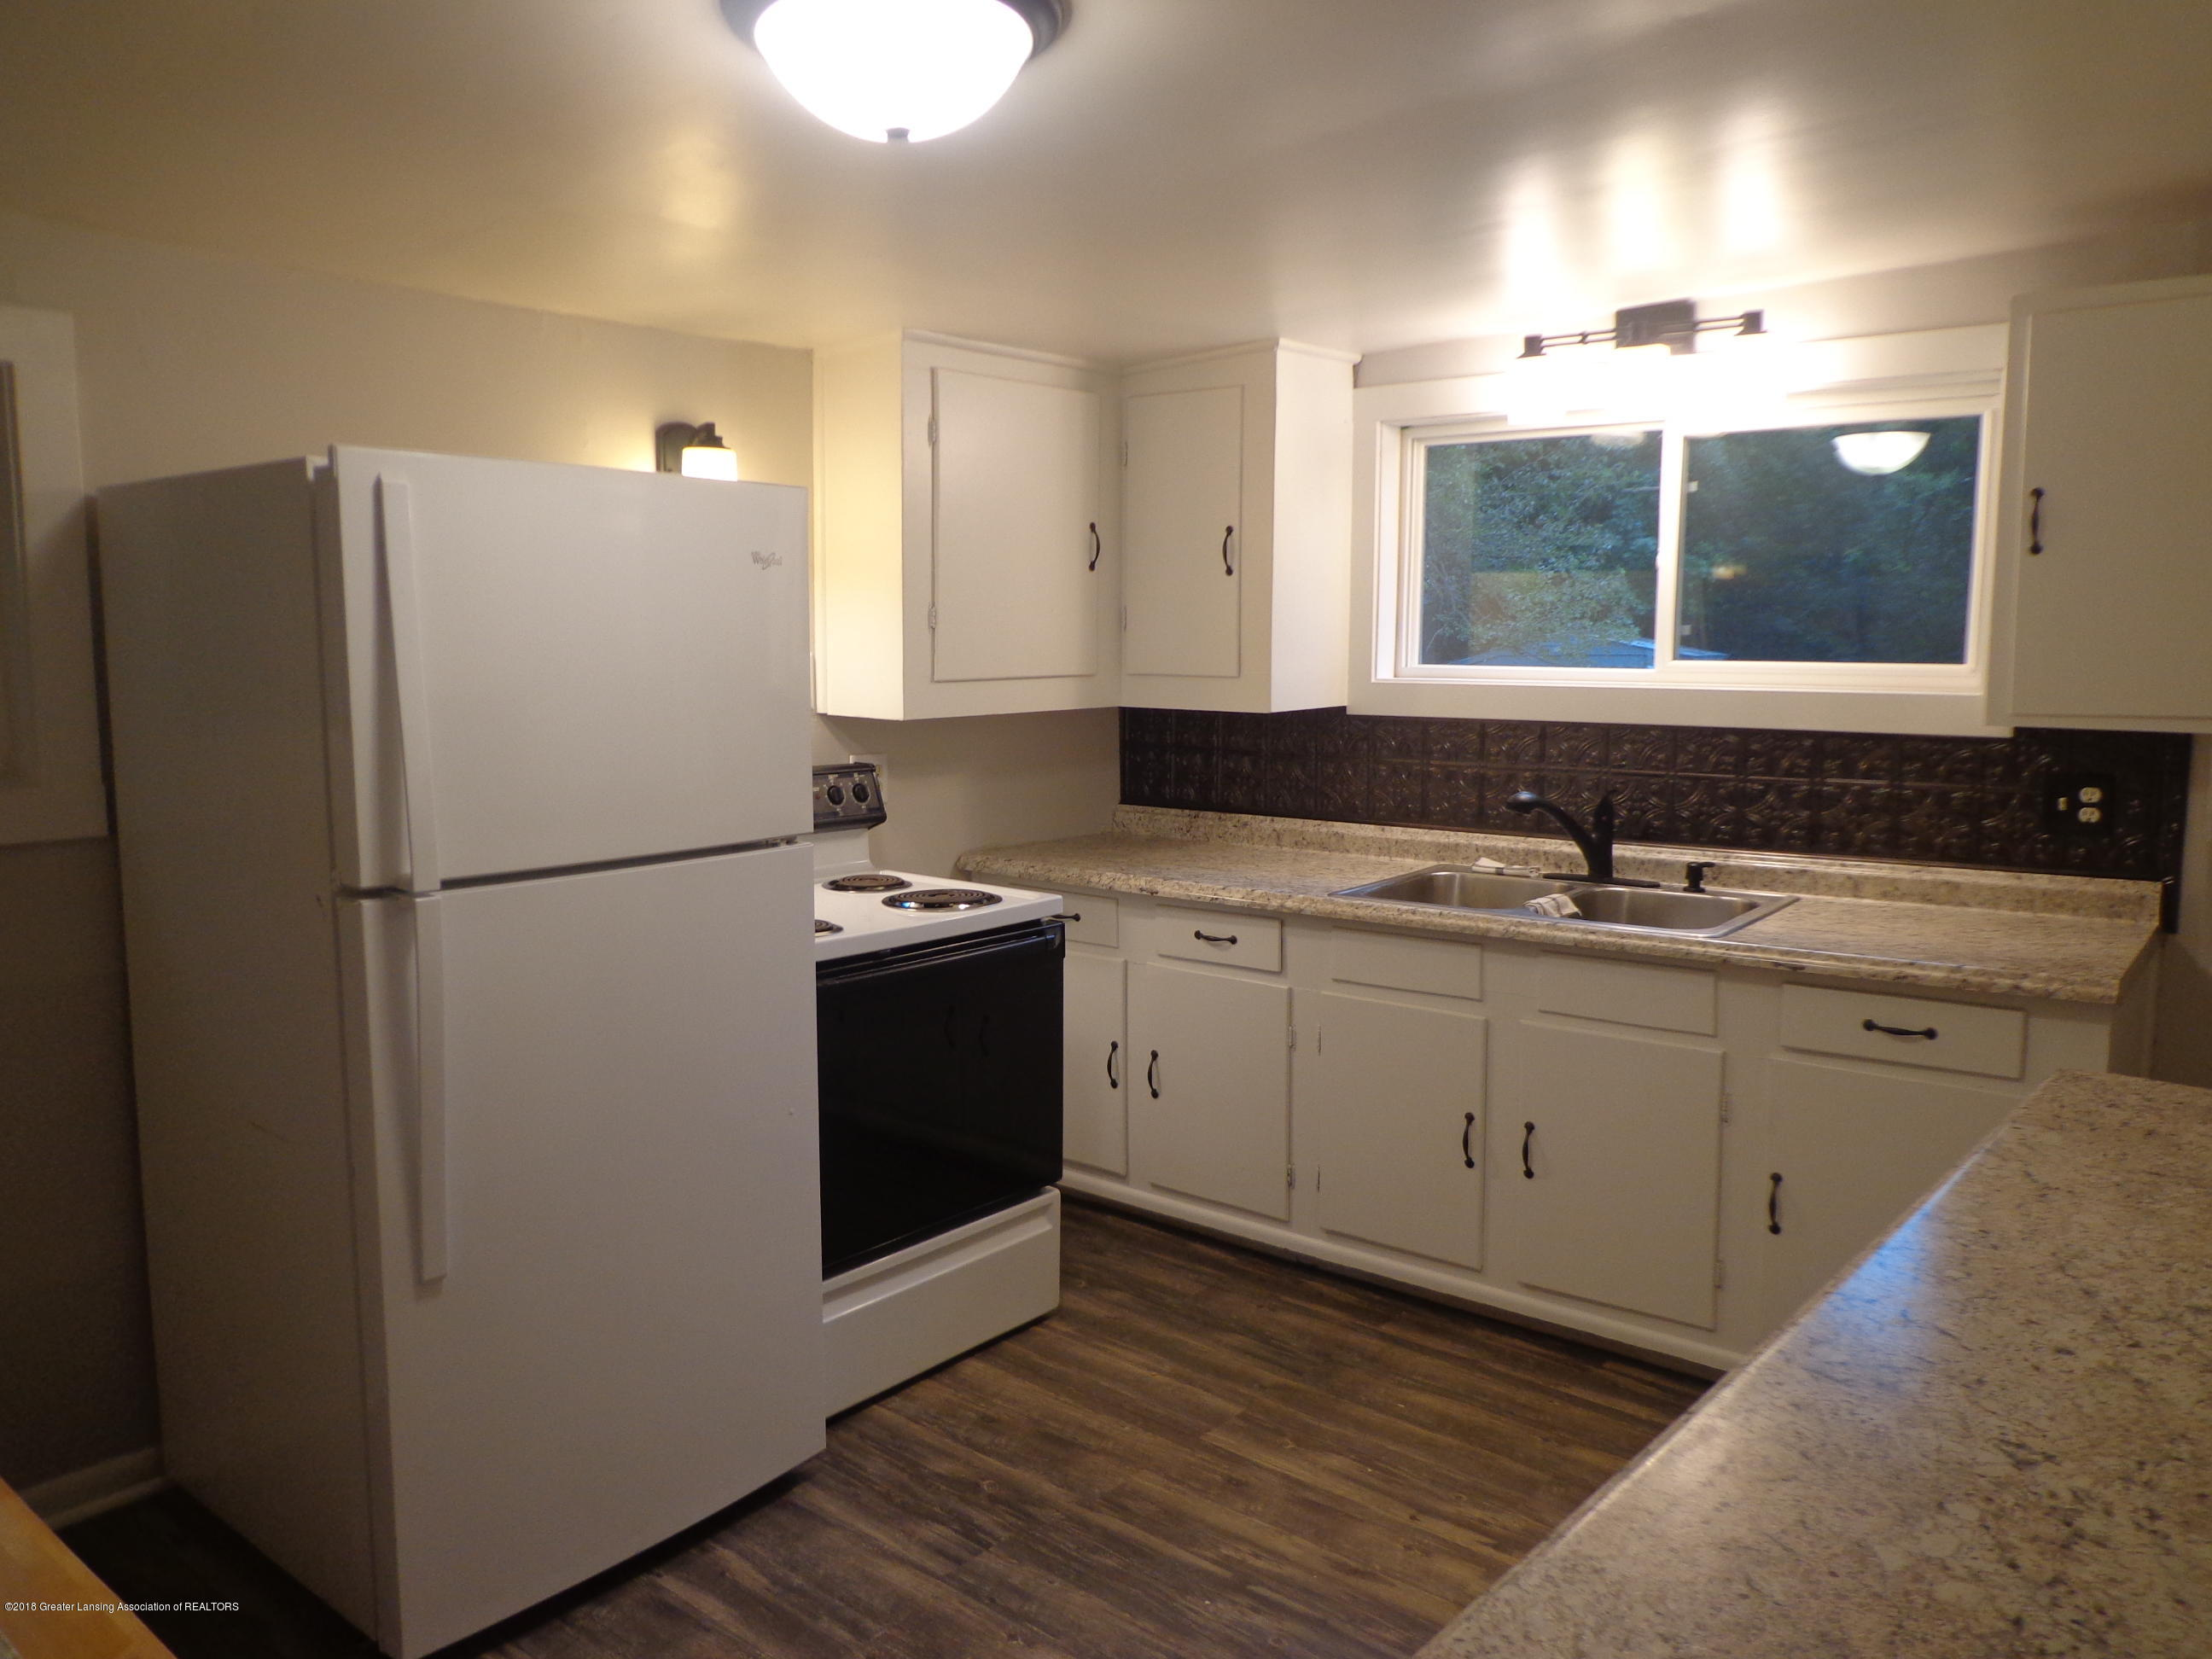 4950 Hogsback Rd - kitchen 1 - 5